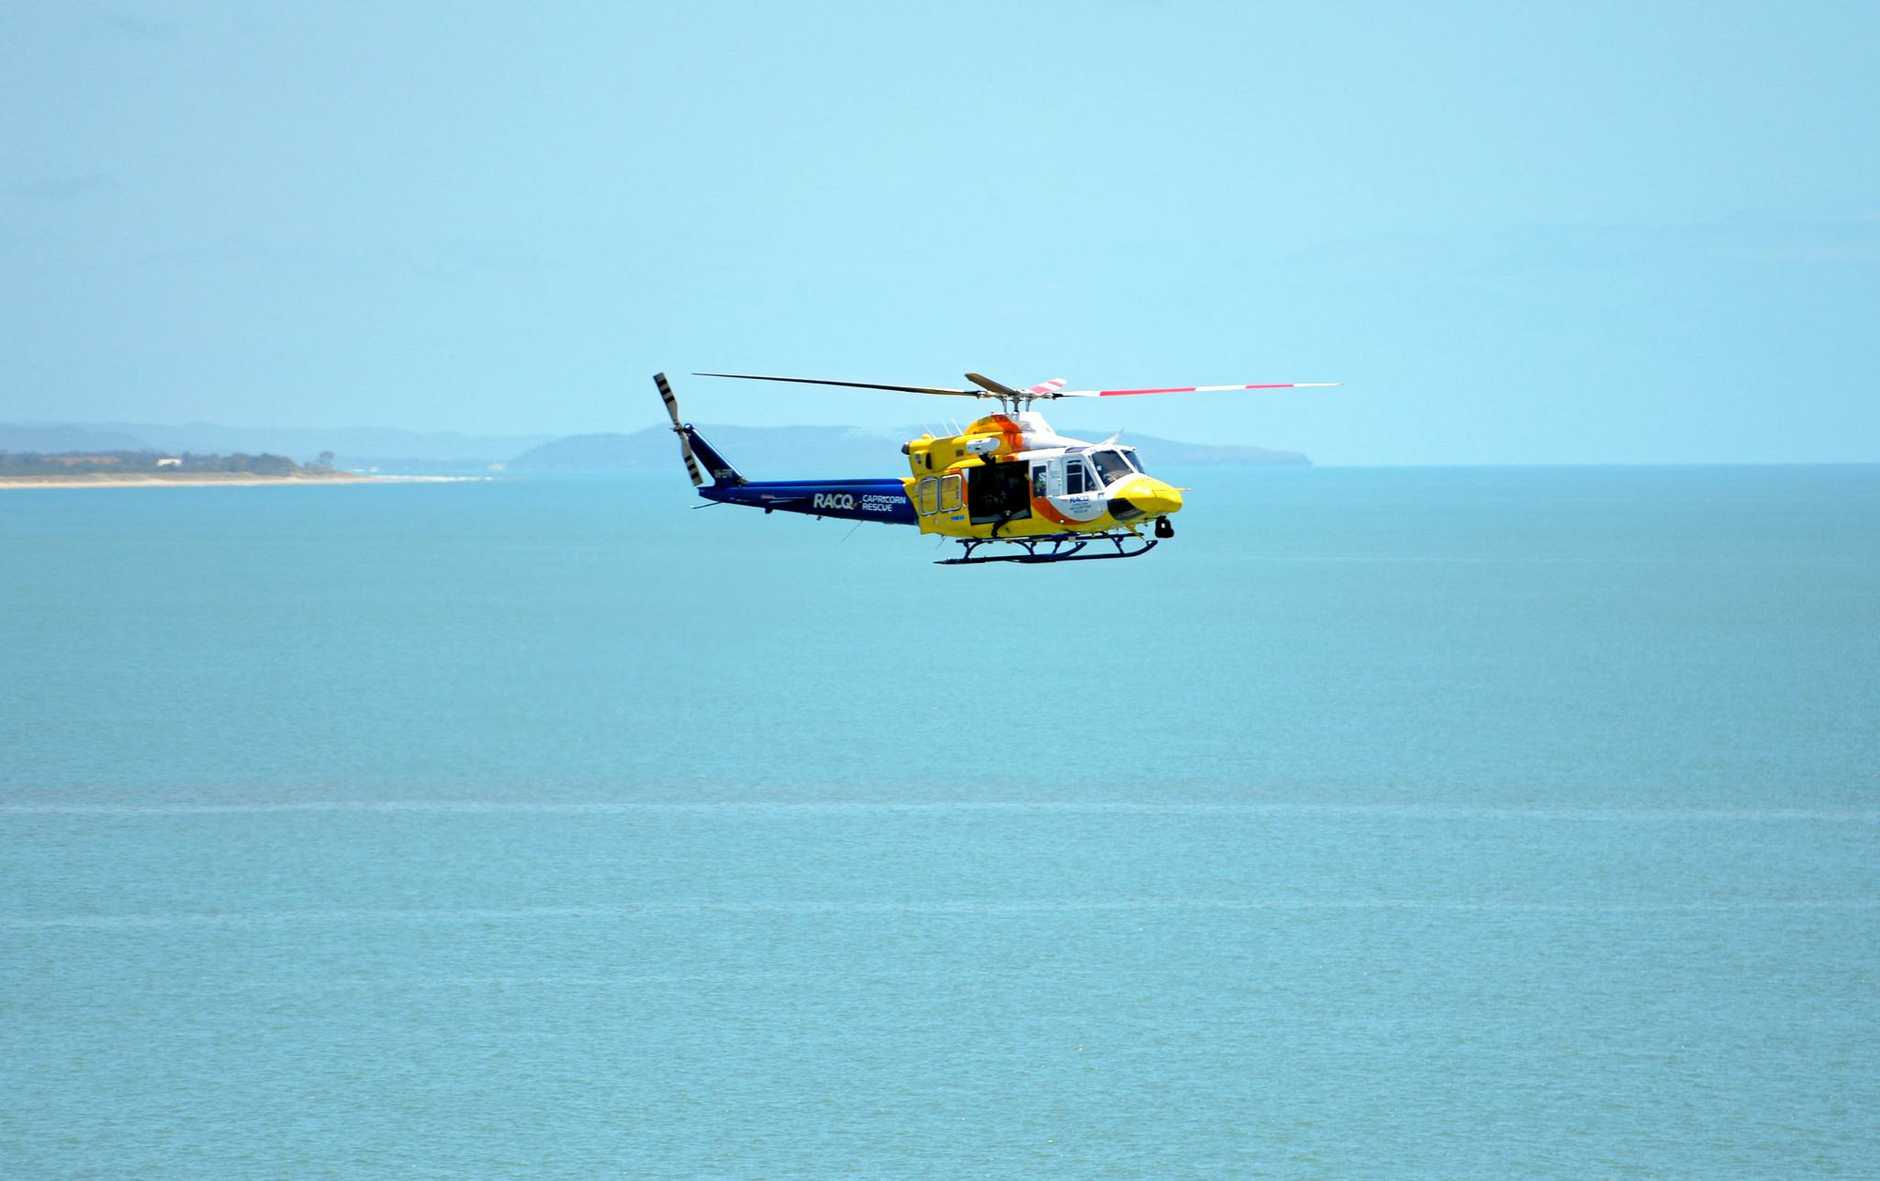 RACQ Capricorn Rescue helicopter conducting training with the Volunteer Coastguard off Wreck Point in Keppel Bay.